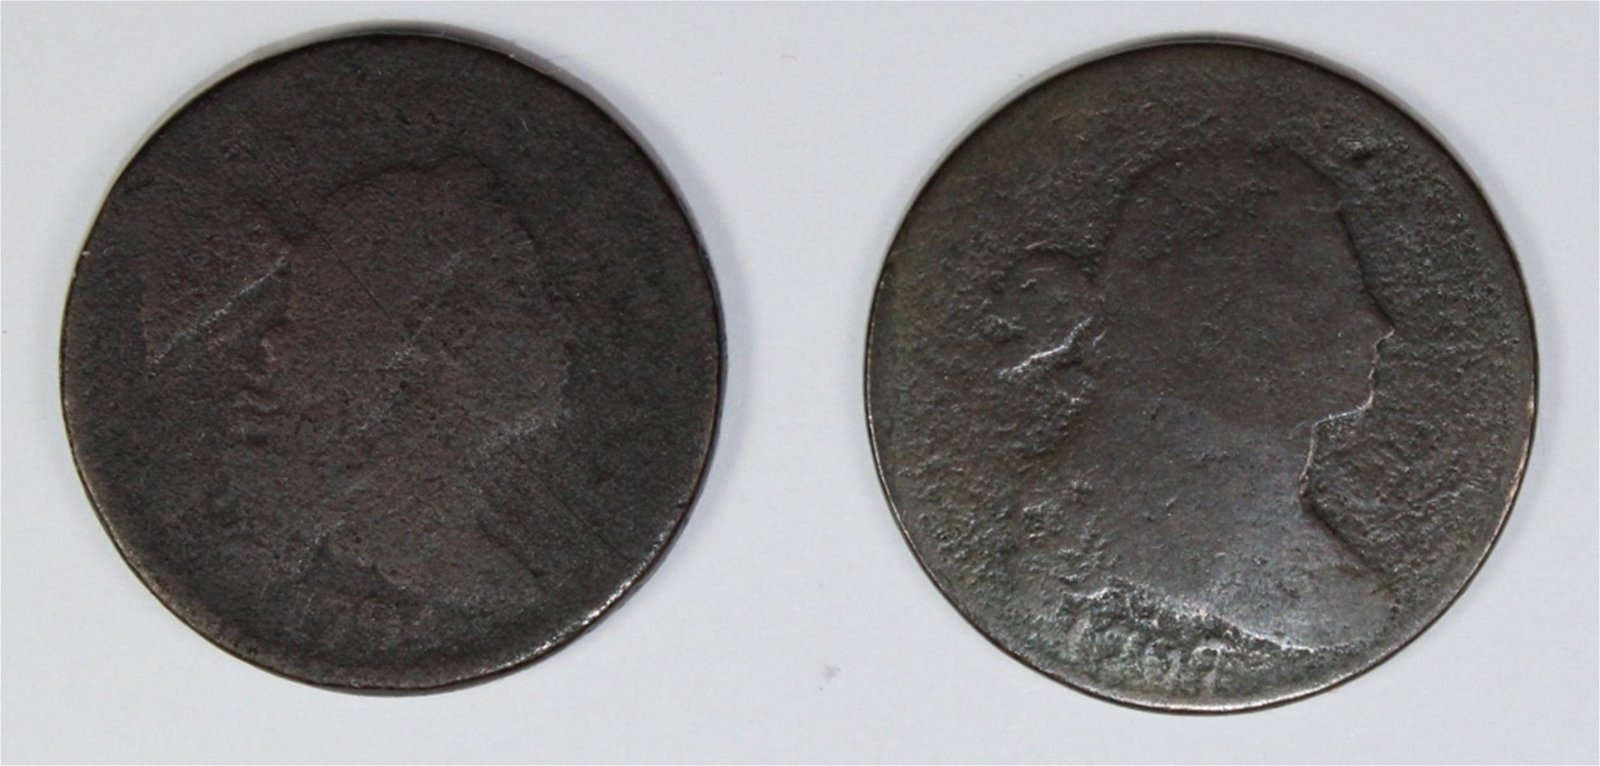 2 EARLY LARGE CENTS 1794 AND 1797